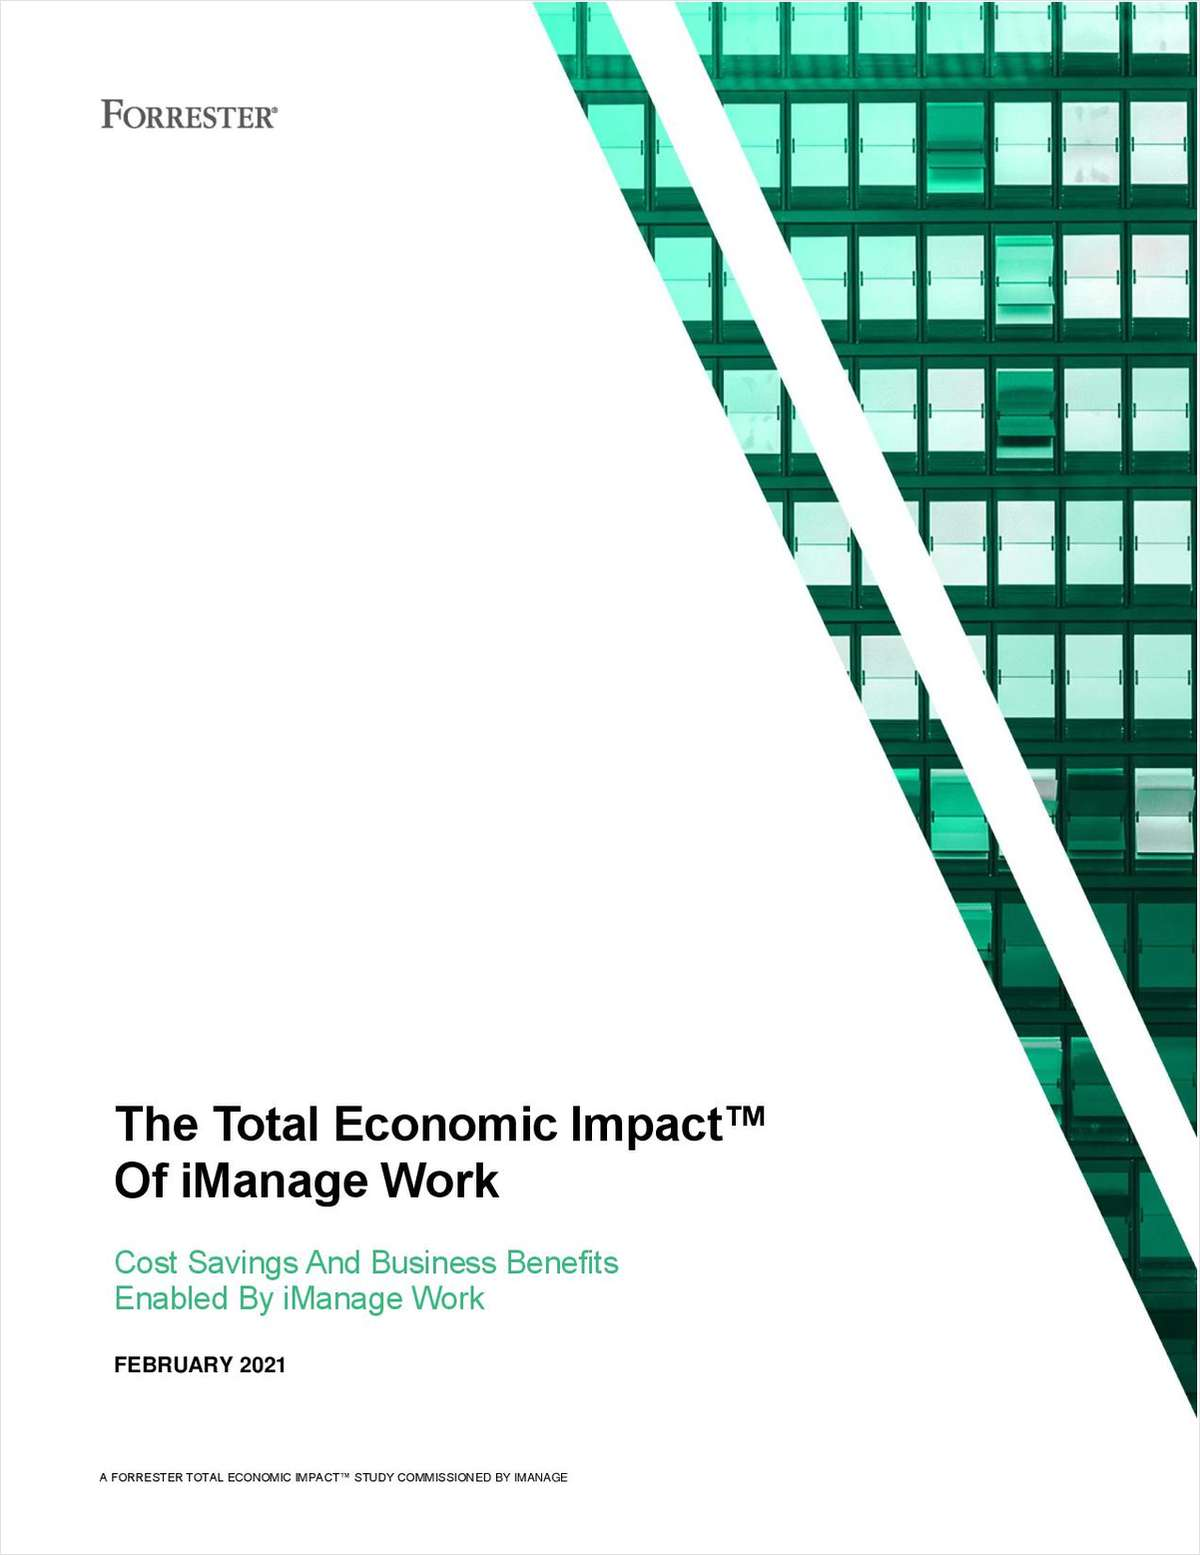 Forrester TEI Study: Building a Business Case for Modern Document Management